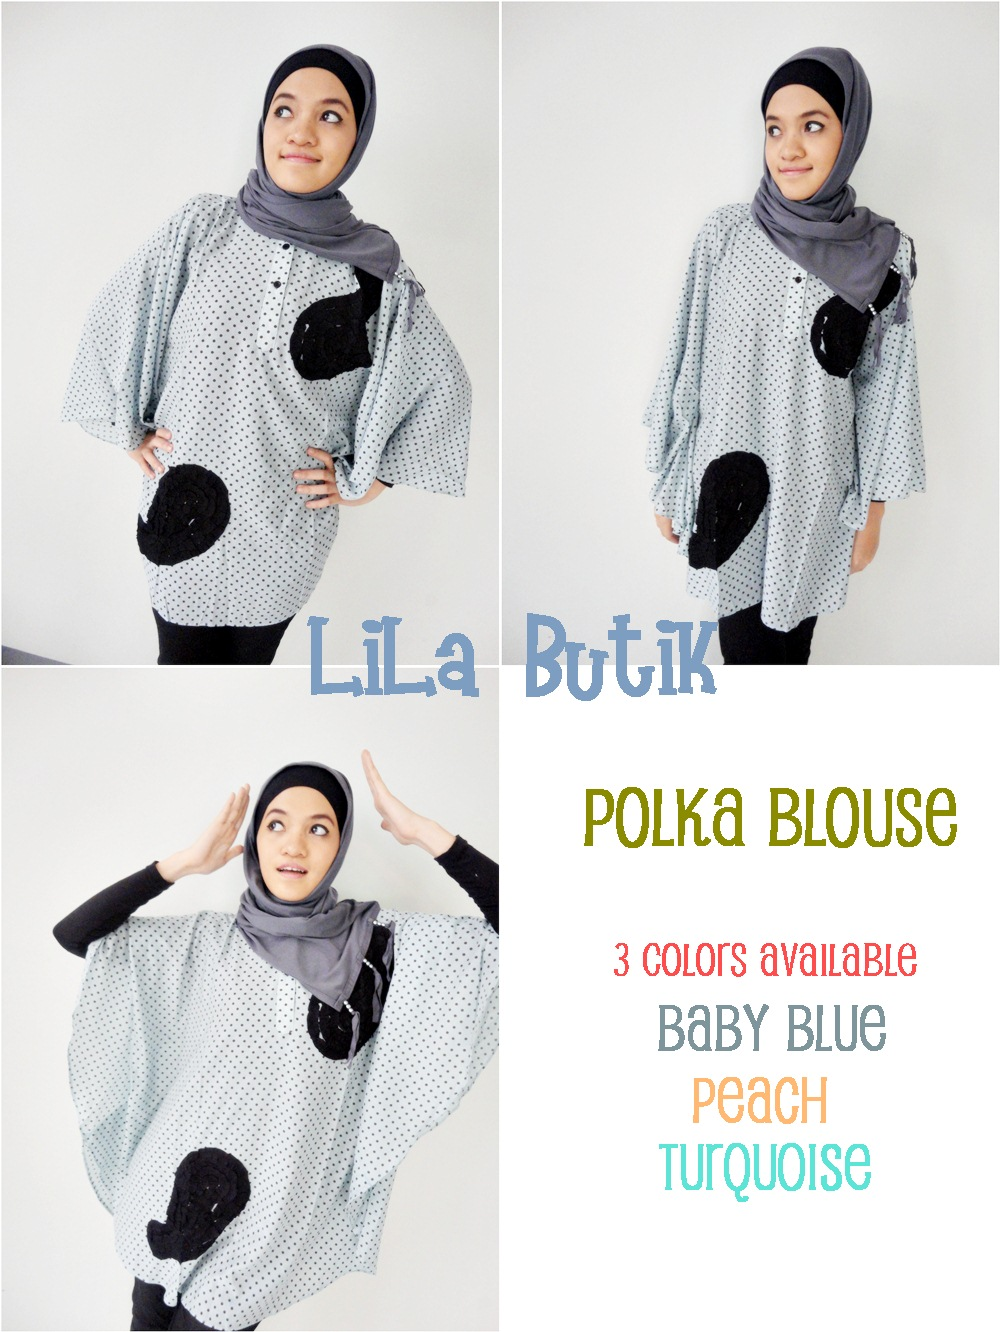 polka-blouse LiLa Butik: Me and My Friend's On-and-Off Online Shop (^____^)v